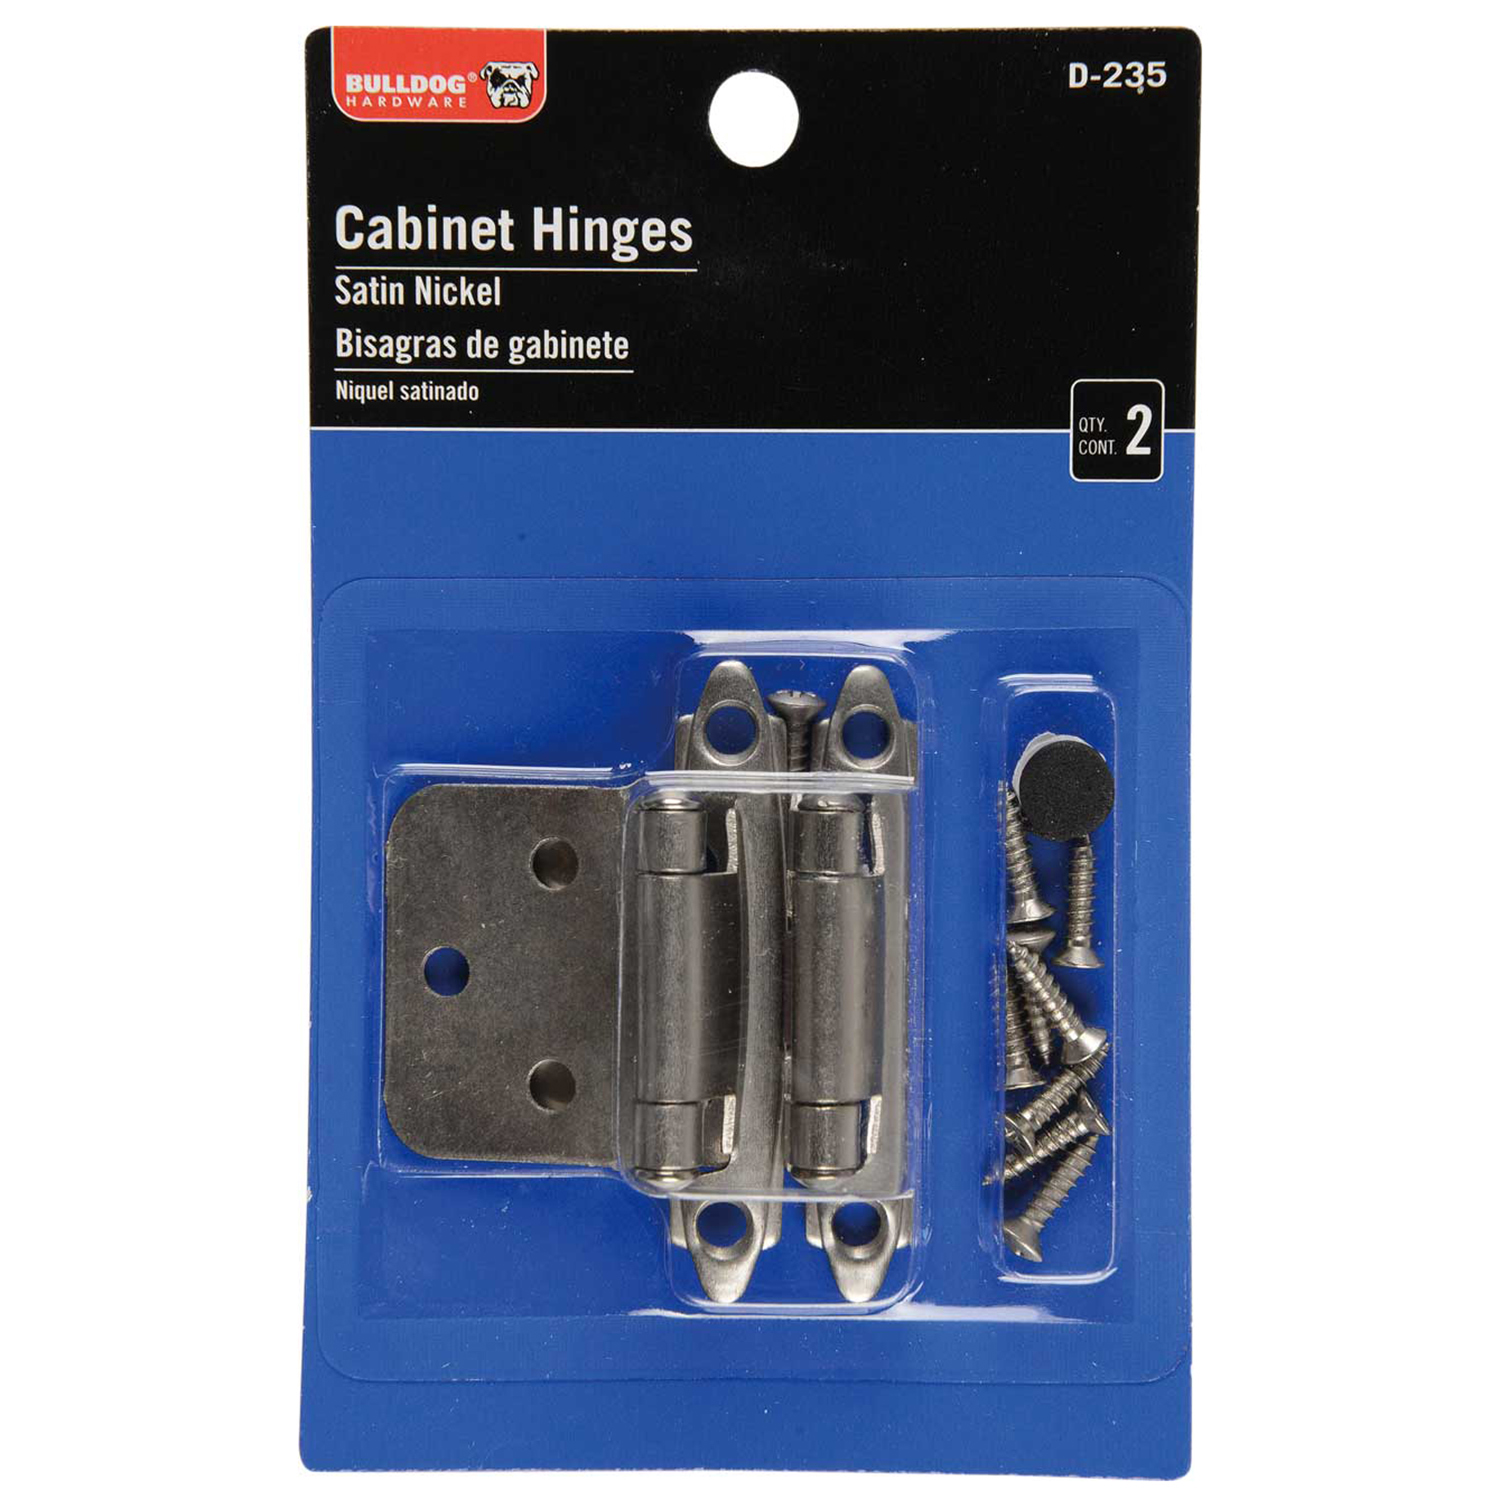 Bulldog Hardware Cabinet Hinges, Satin Nickel by Newell Rubbermaid